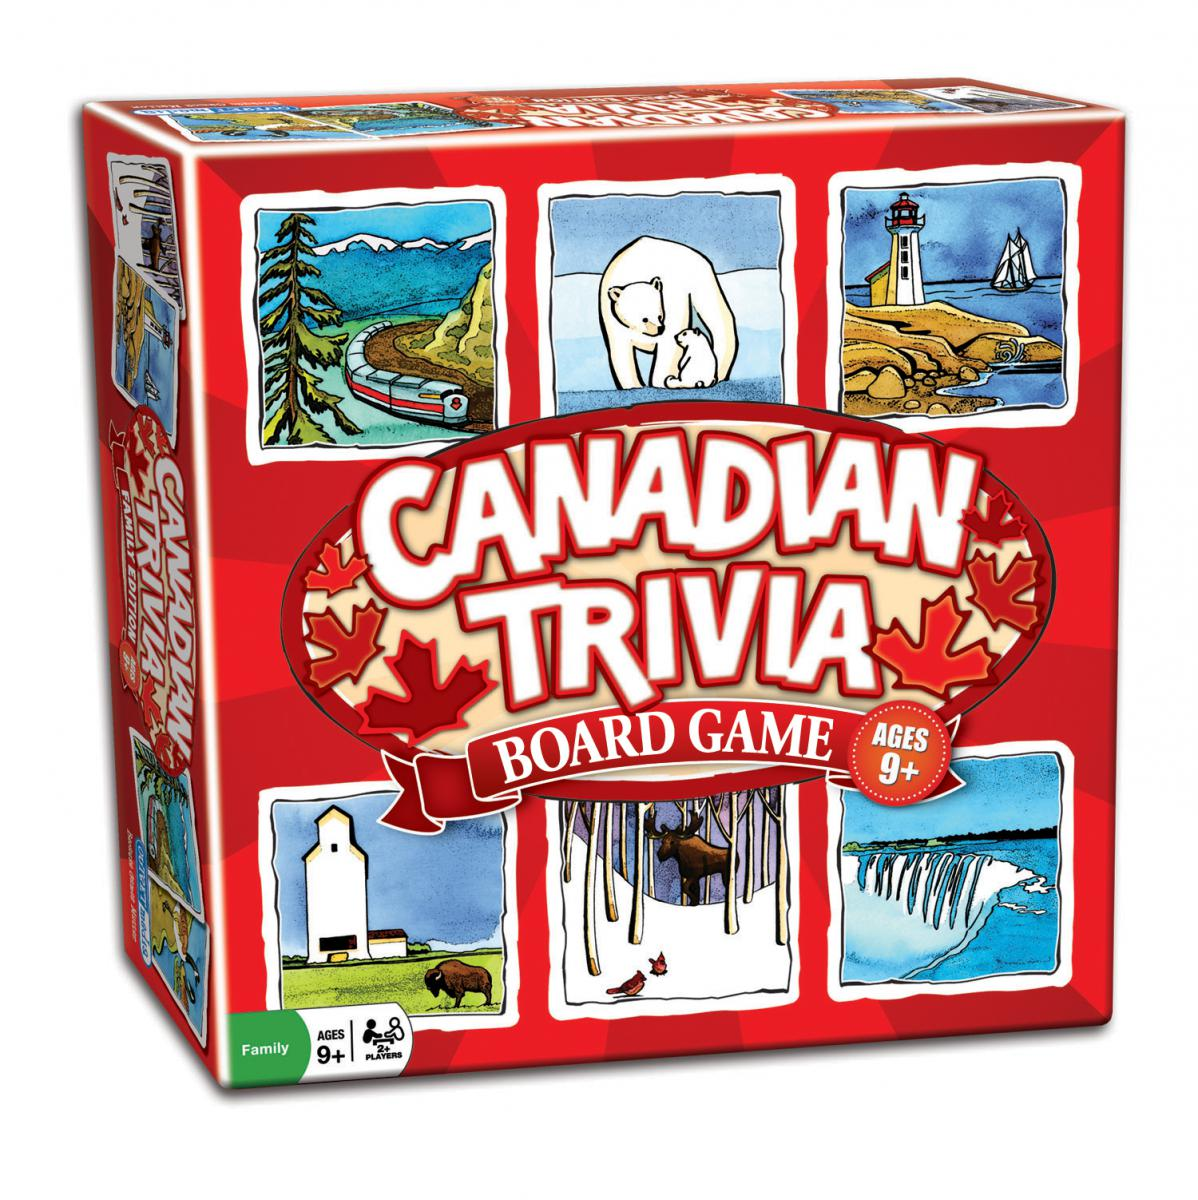 Canadian Trivia Board Game